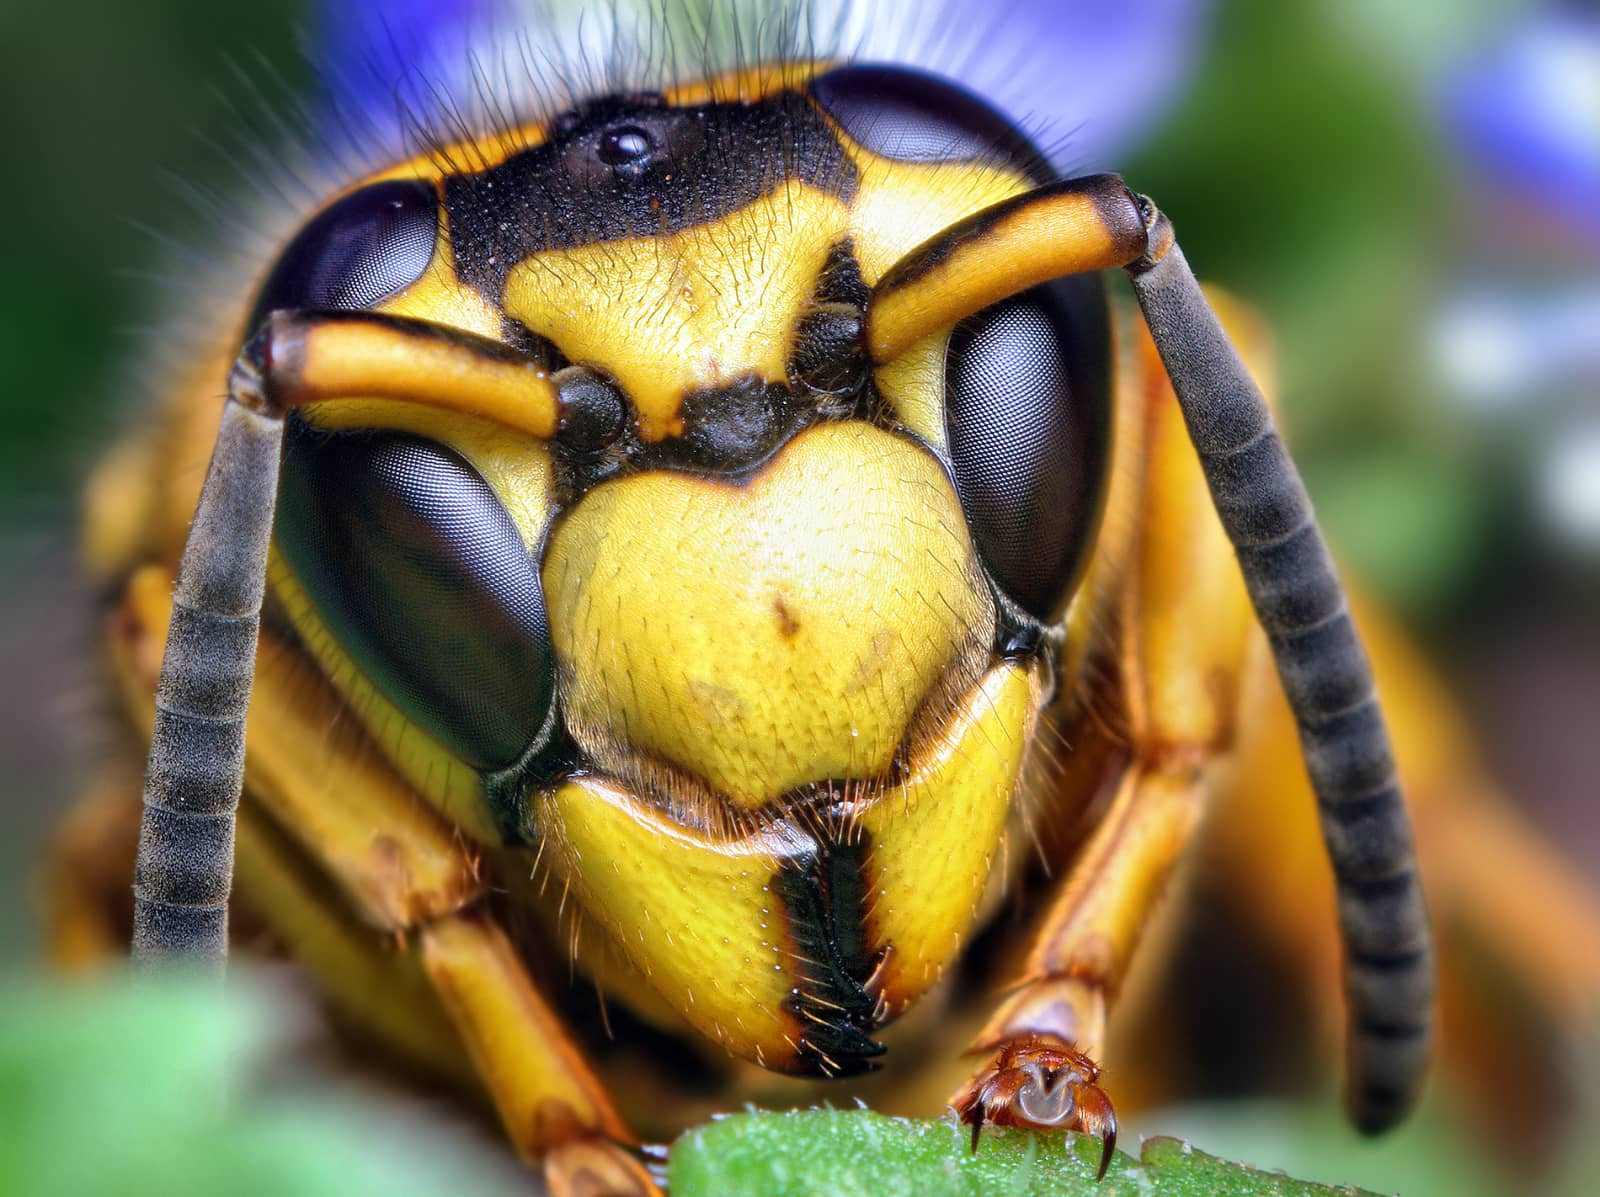 Face of a Southern Yellowjacket Queen